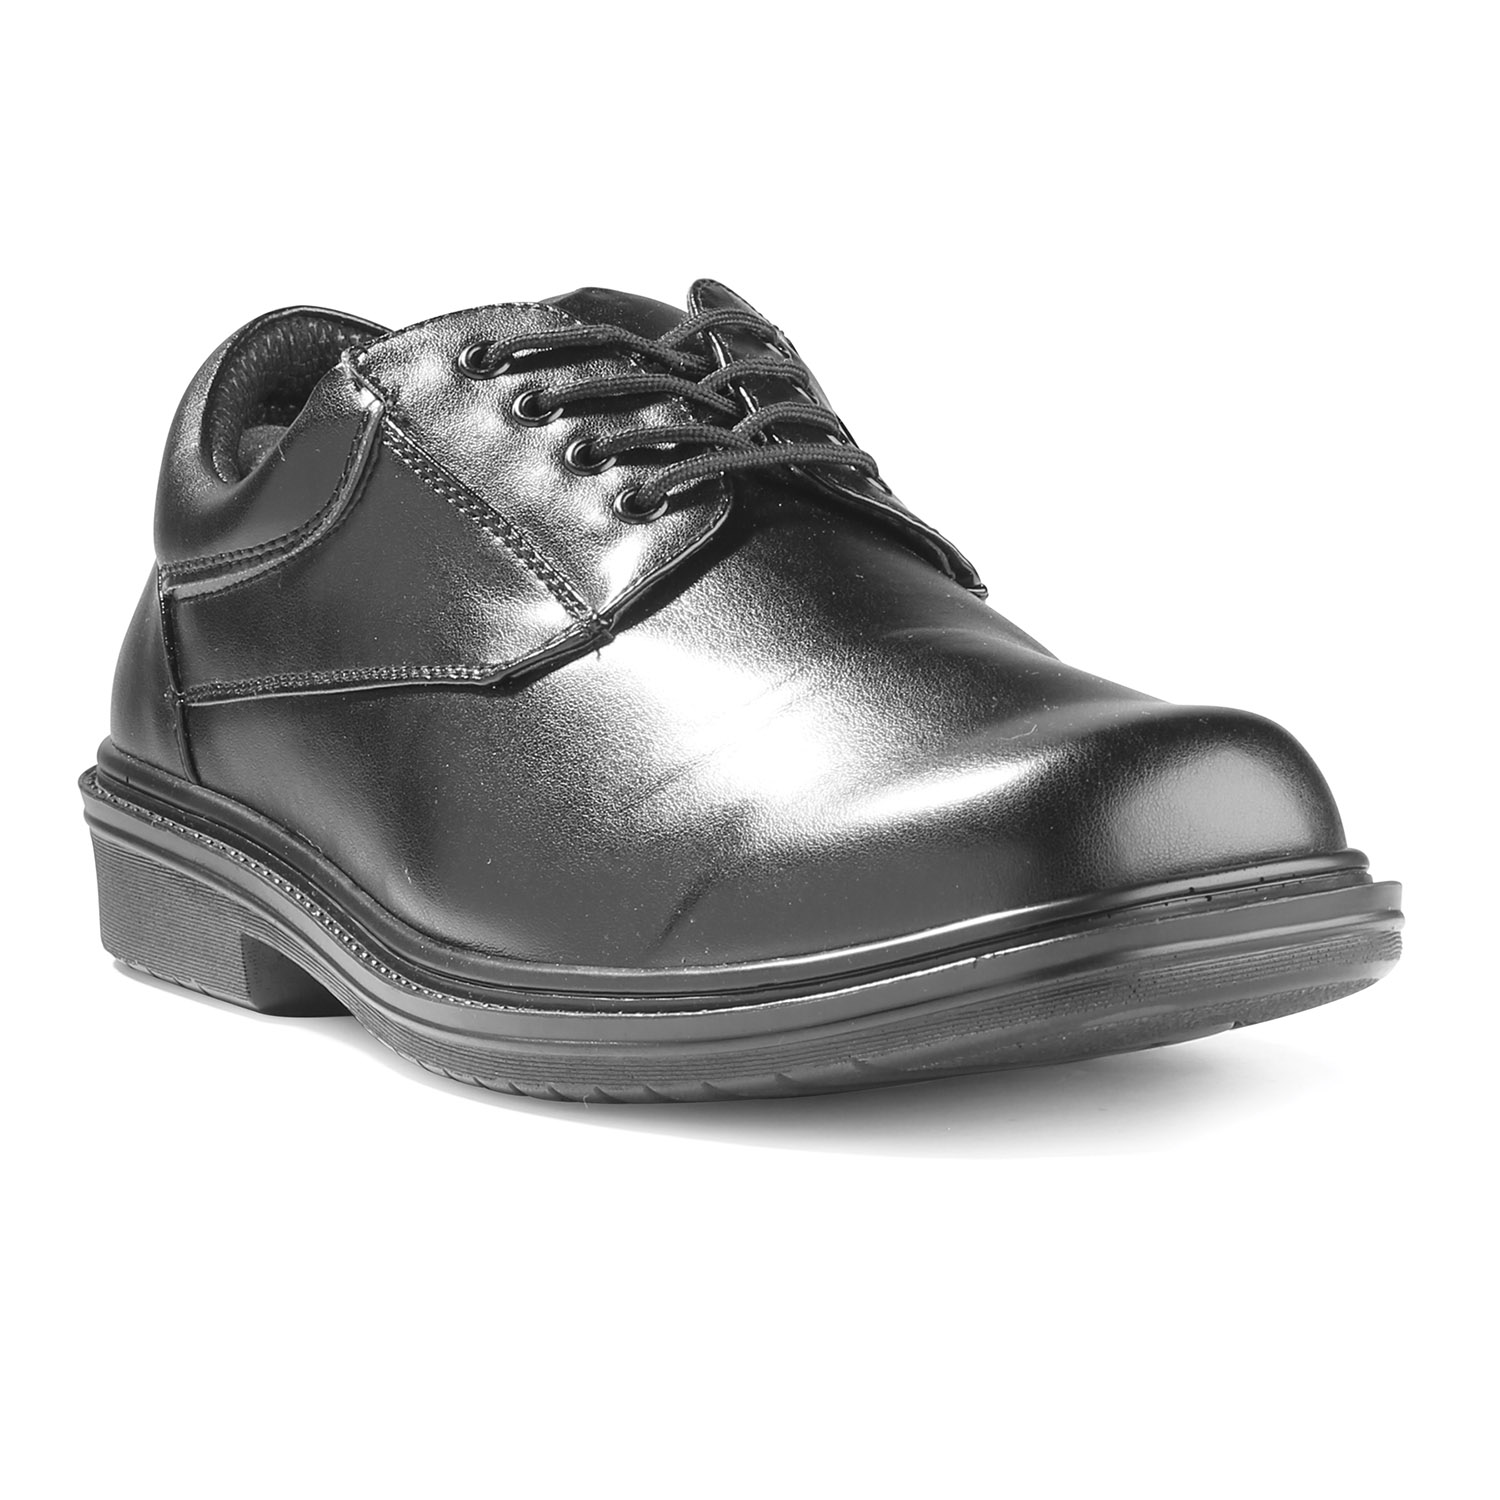 LawPro Mens Oxford Shoe